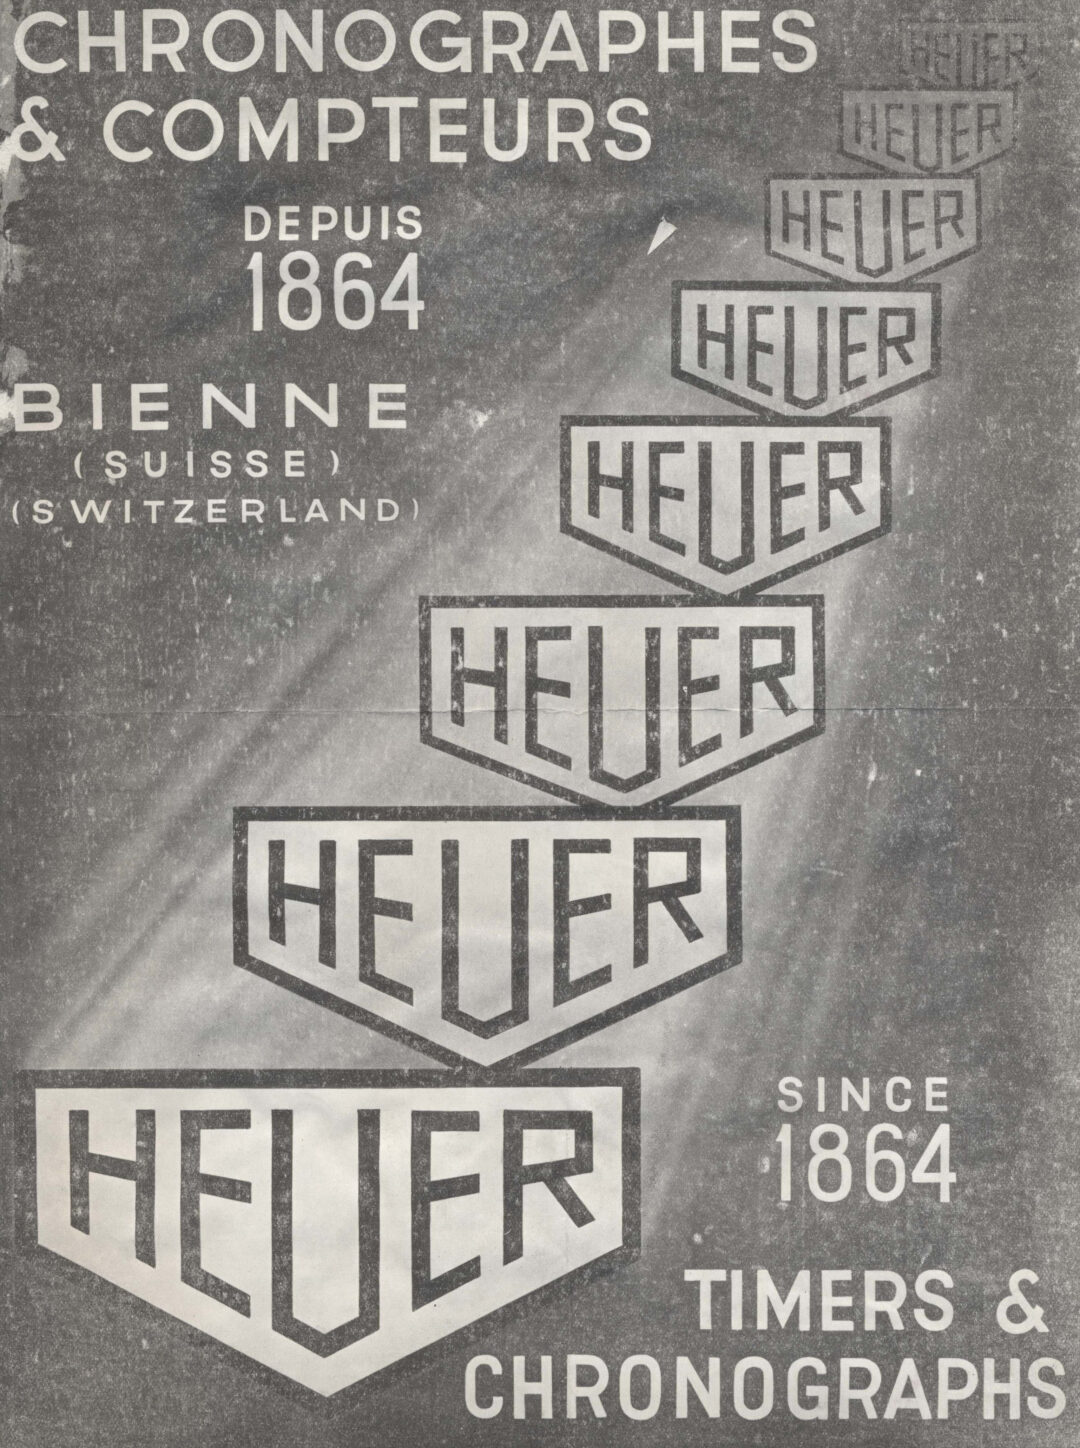 Heuer advert from 1936